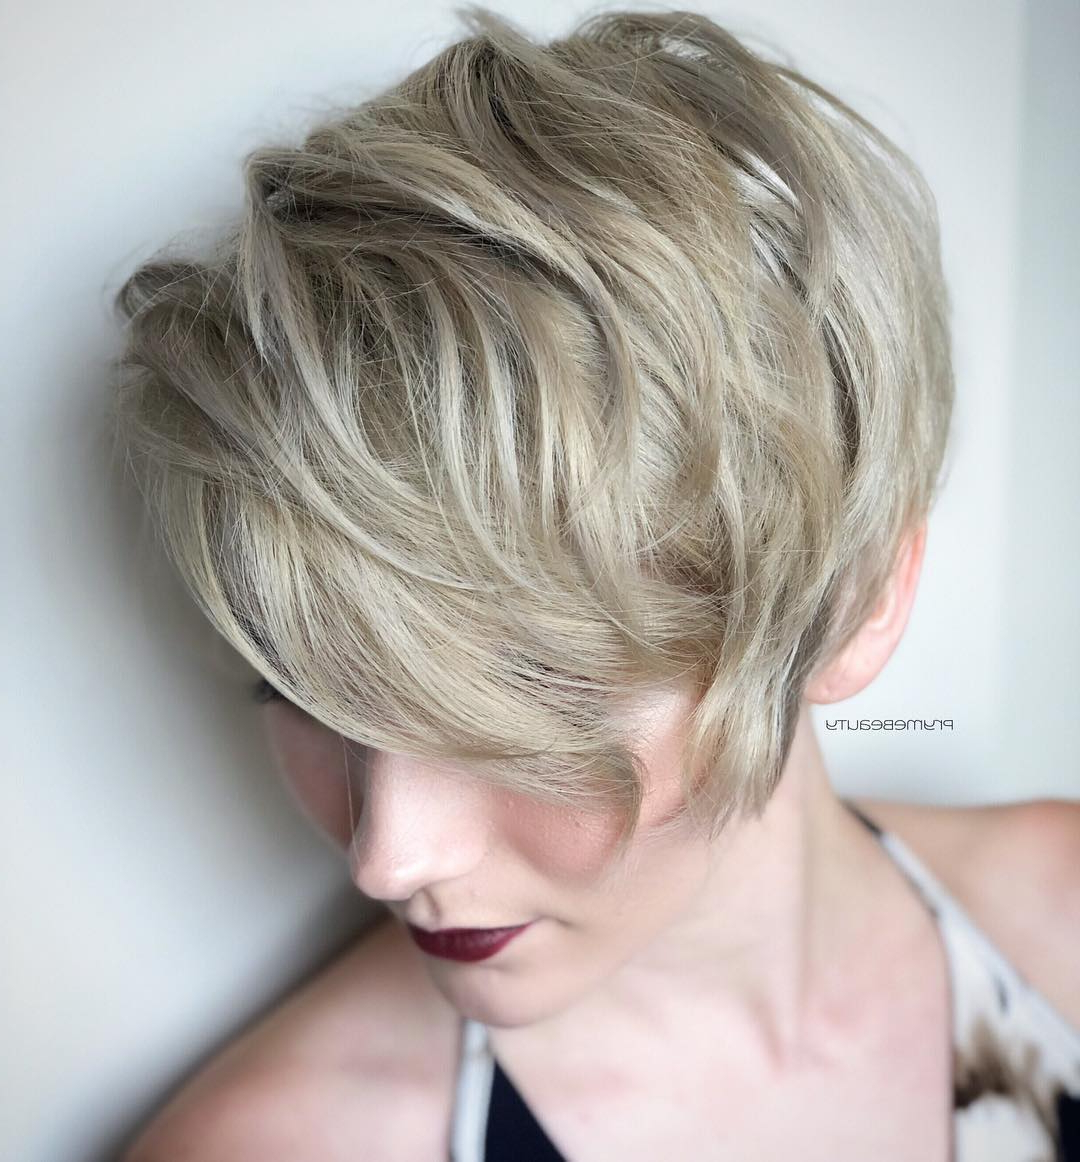 Top 10 Trendy, Low Maintenance Short Layered Hairstyles For 2018 2019 Pertaining To Short Layered Hairstyles (View 19 of 20)